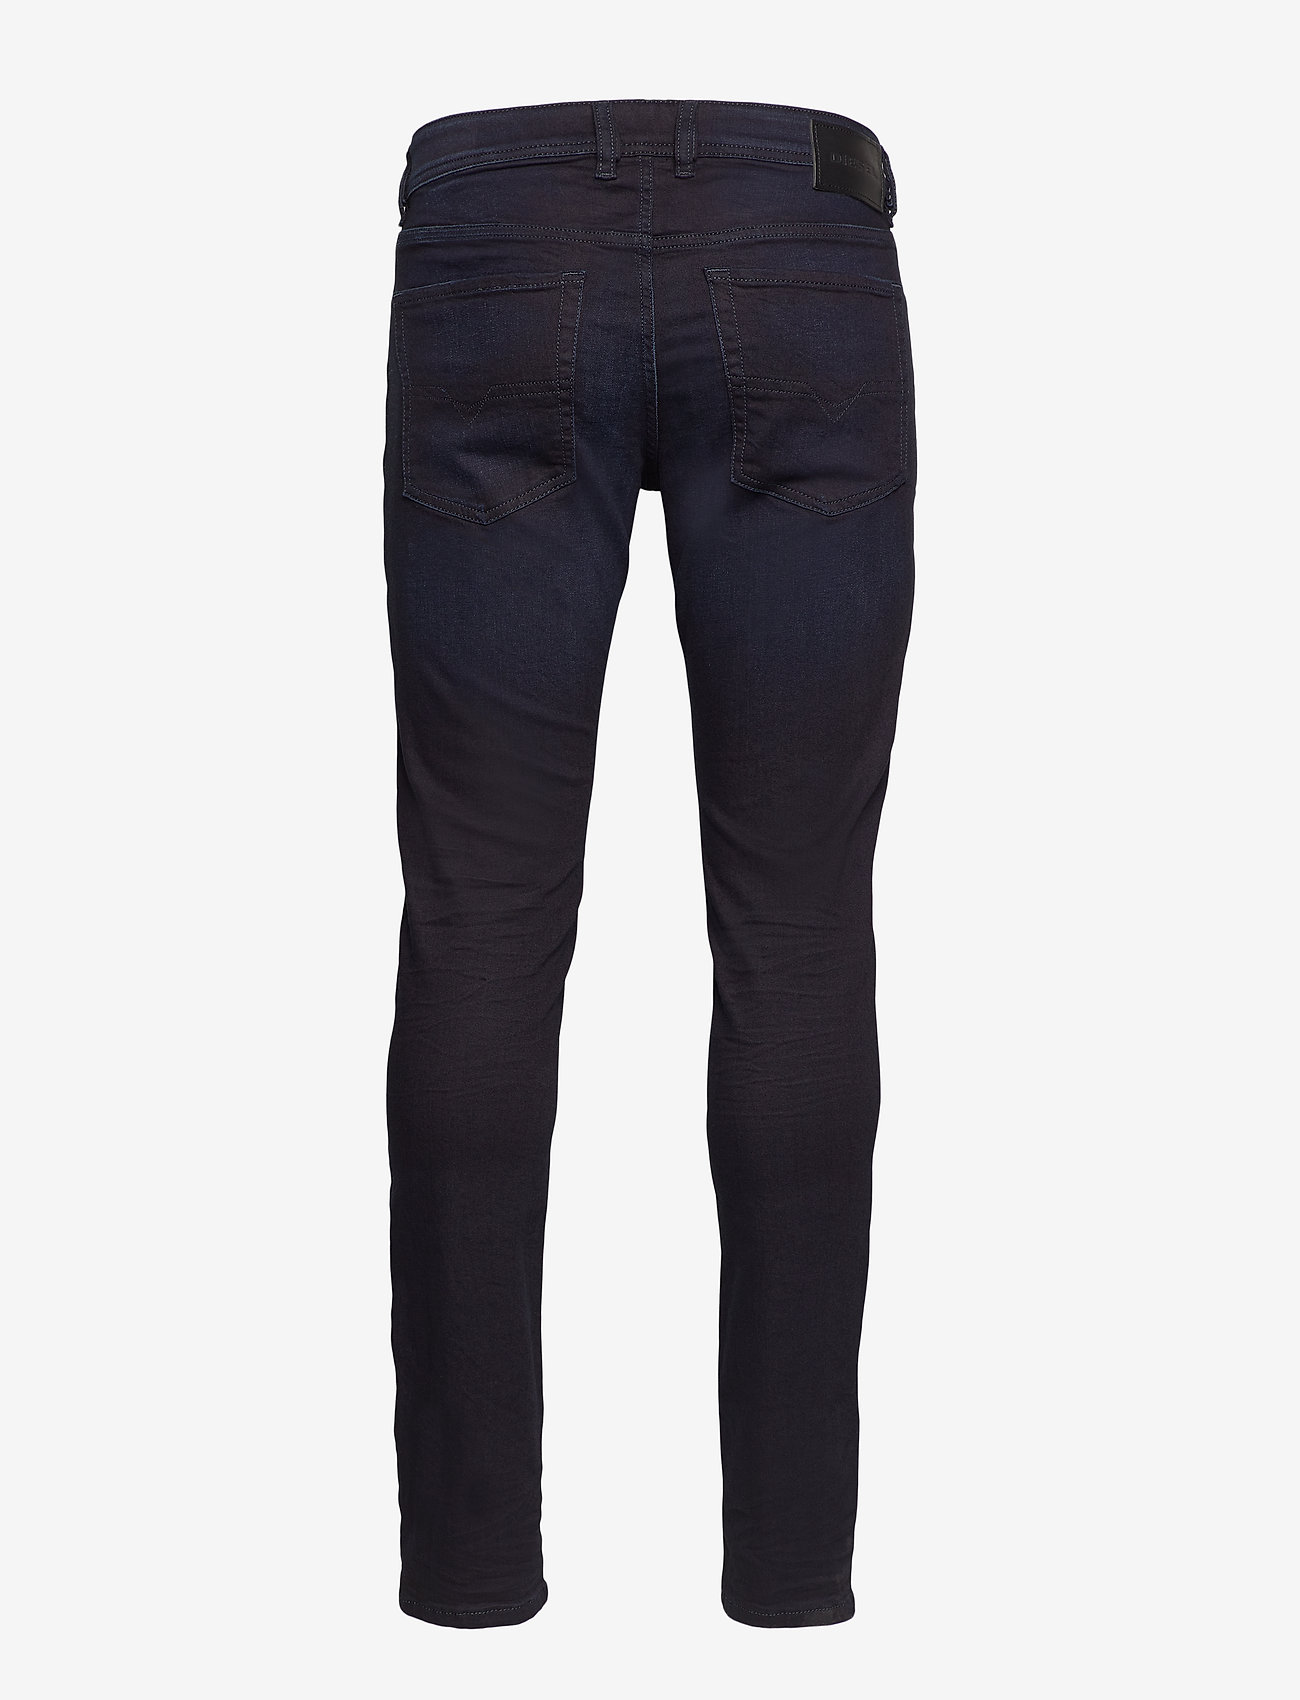 Diesel Men - SLEENKER-X TROUSERS - skinny jeans - denim - 1